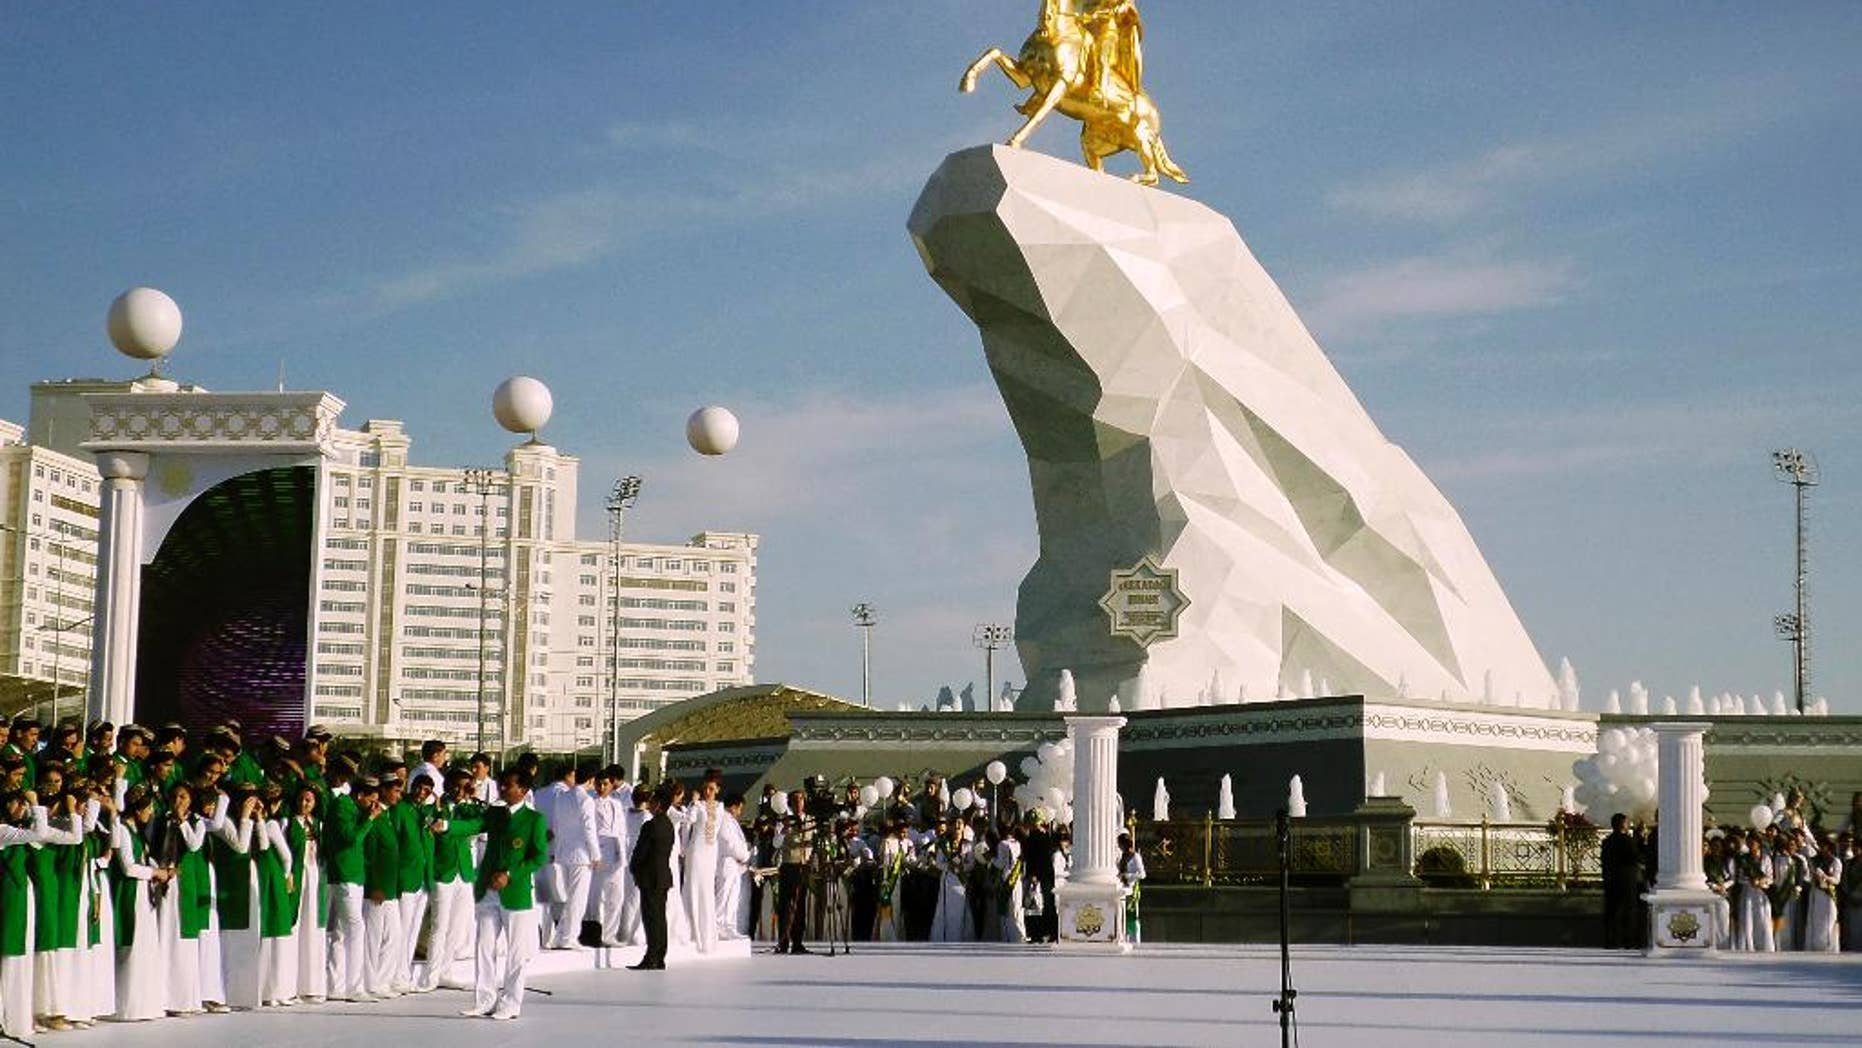 People gather for the monument unveiling ceremony in Ashgabat, Turkmenistan Monday, May 25, 2015. The isolated energy-rich Central Asian nation of Turkmenistan has unveiled a gold-leafed statue of the president in a gesture intended to burnish the leader's burgeoning cult of personality. The 21-meter monument presented to the public Monday consists of a statue of President Gurbanguly Berdymukhamedov atop a horse mounted on a towering pile of marble. (AP Photo/Alexander Vershinin)